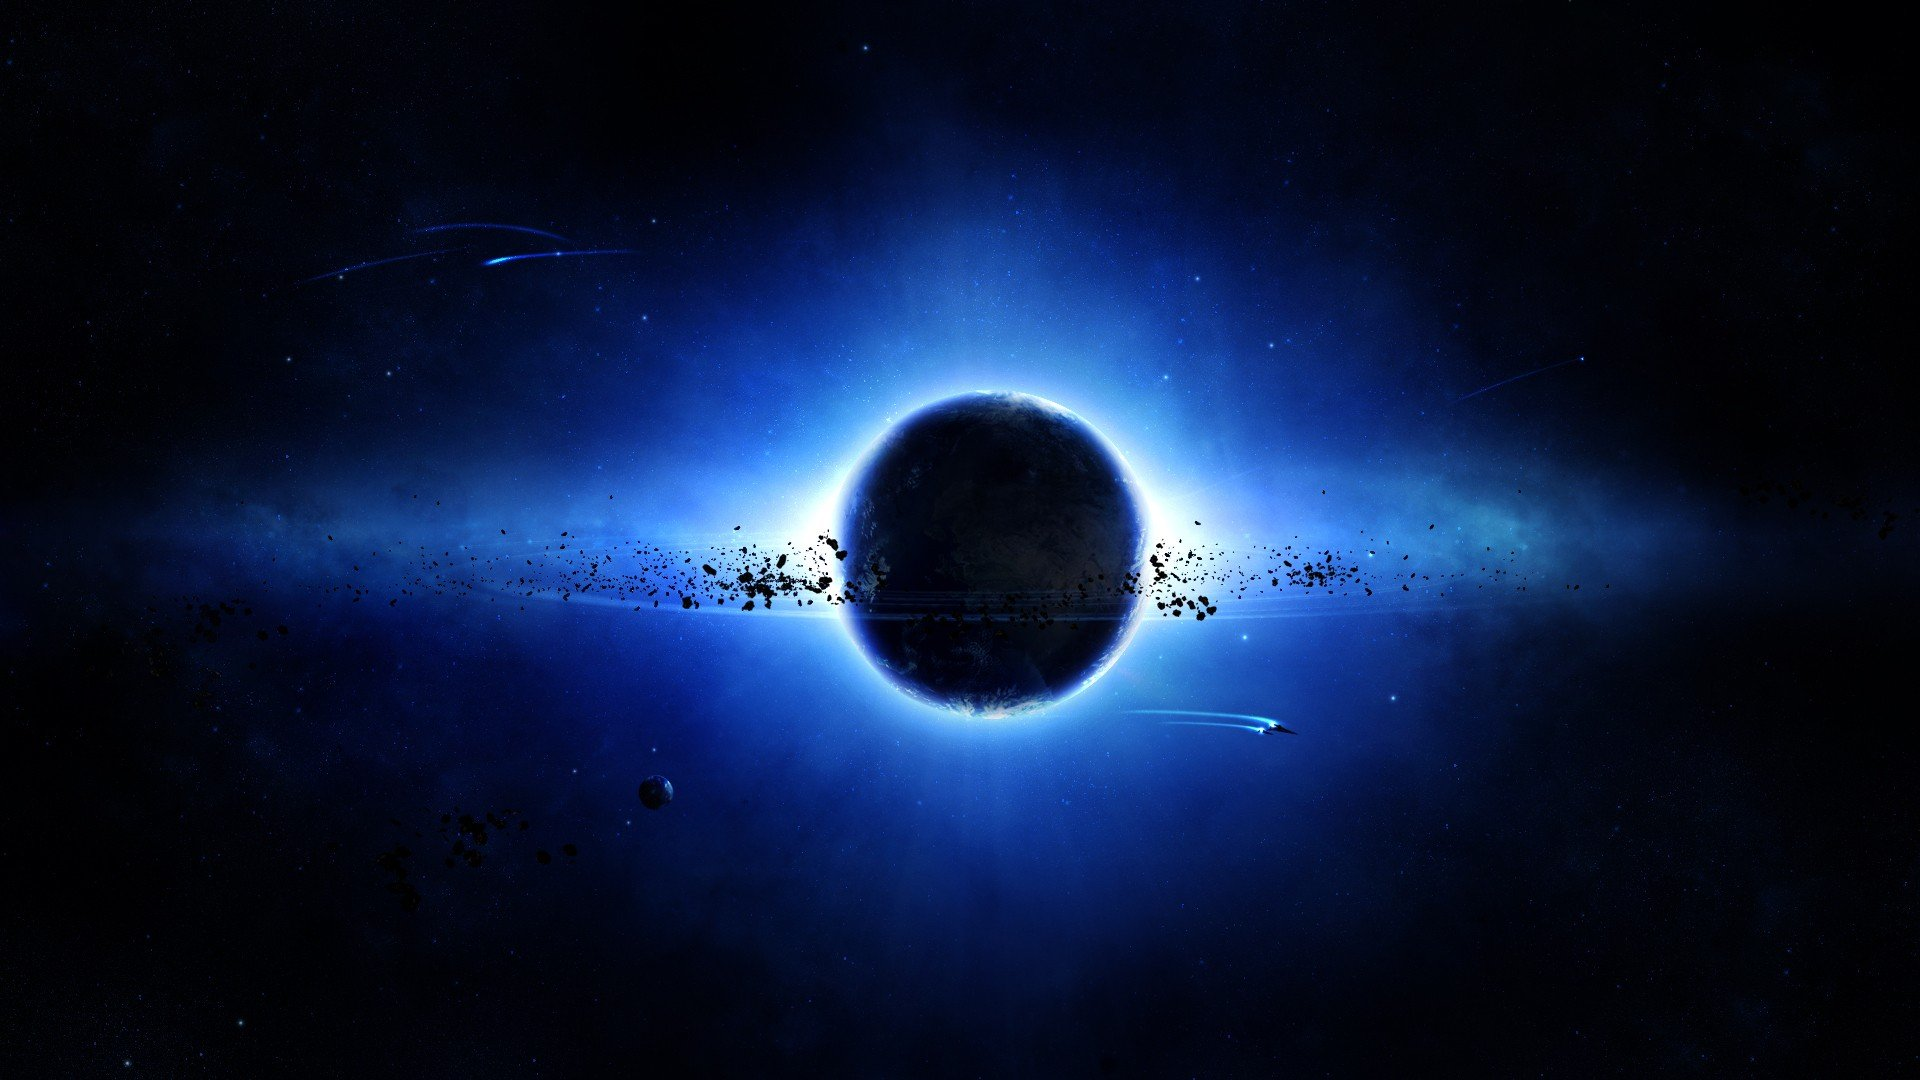 Dark blue space wallpaper wallpapersafari - Black space wallpaper ...